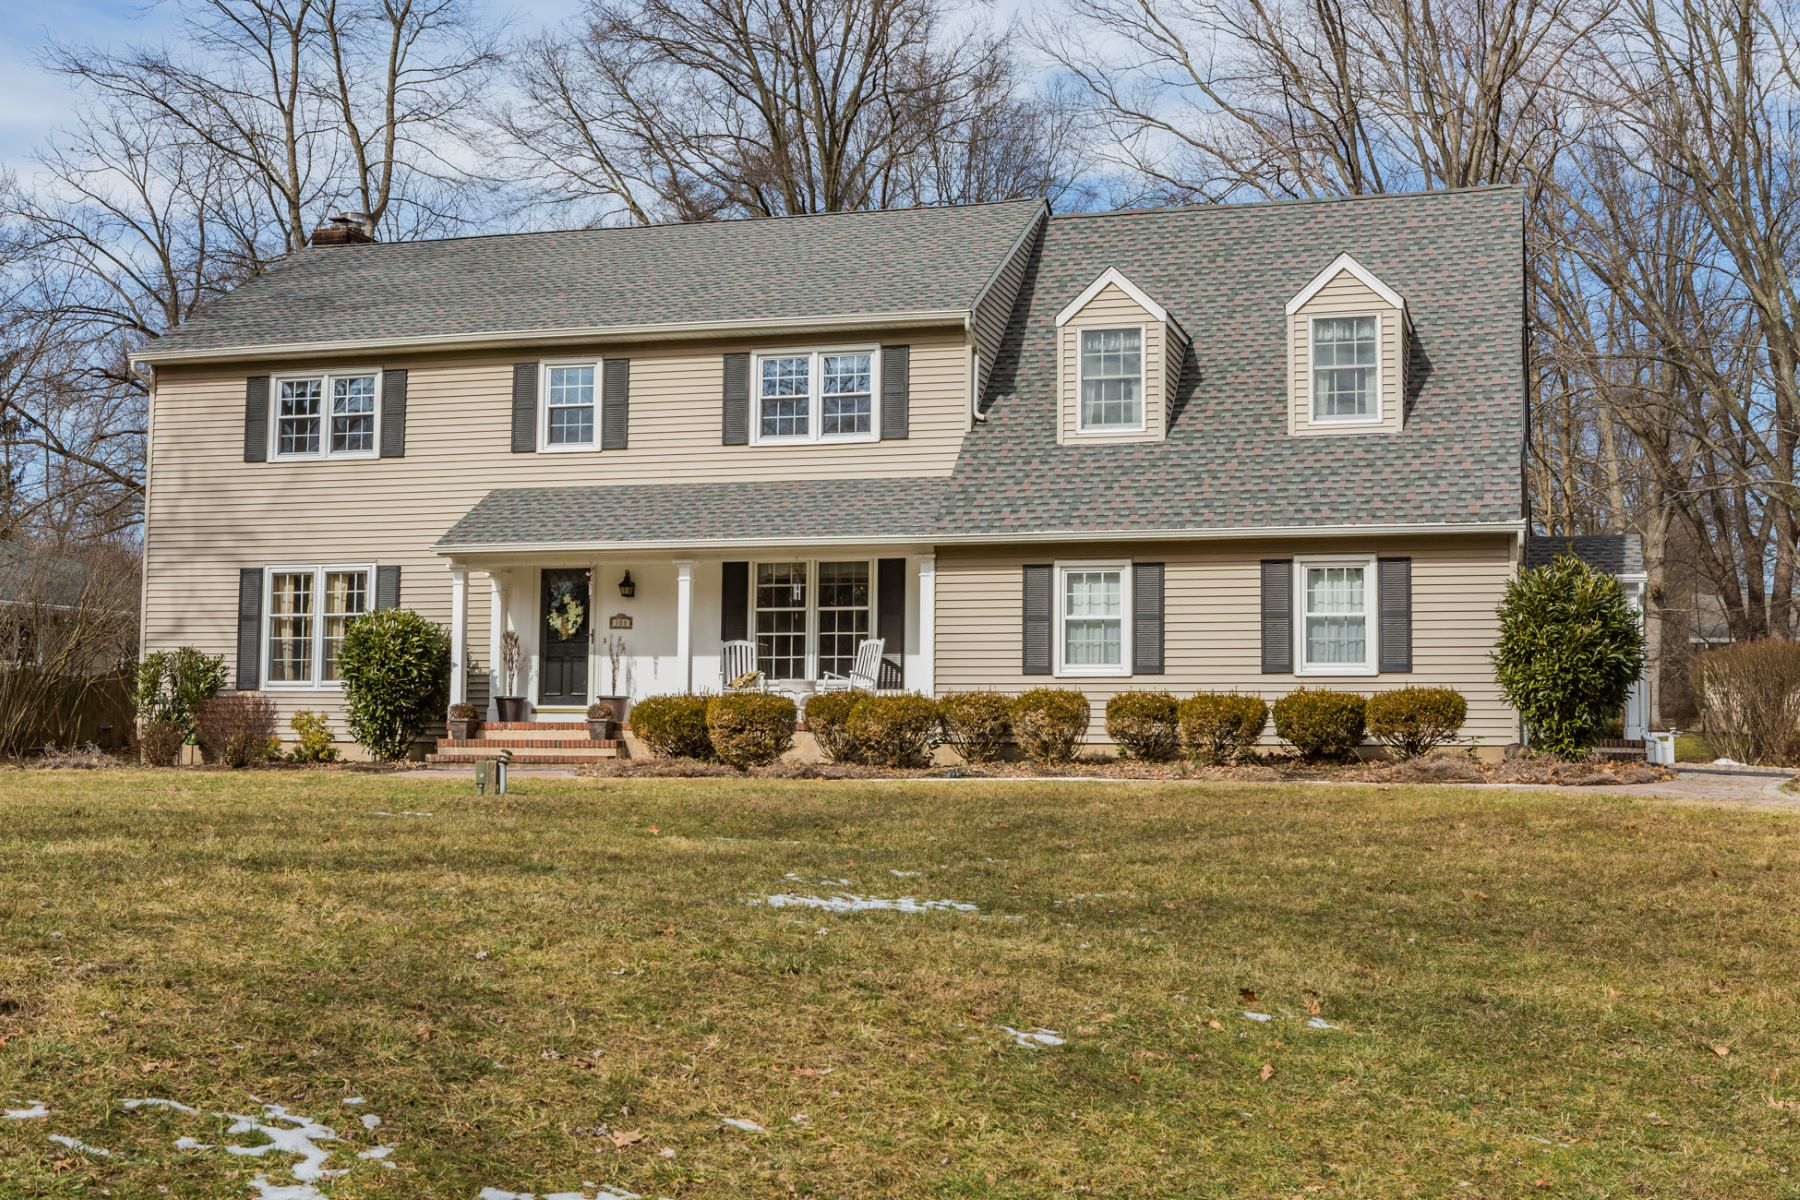 sales property at A Wonderful Location, So Close To Town - Hopewell Township